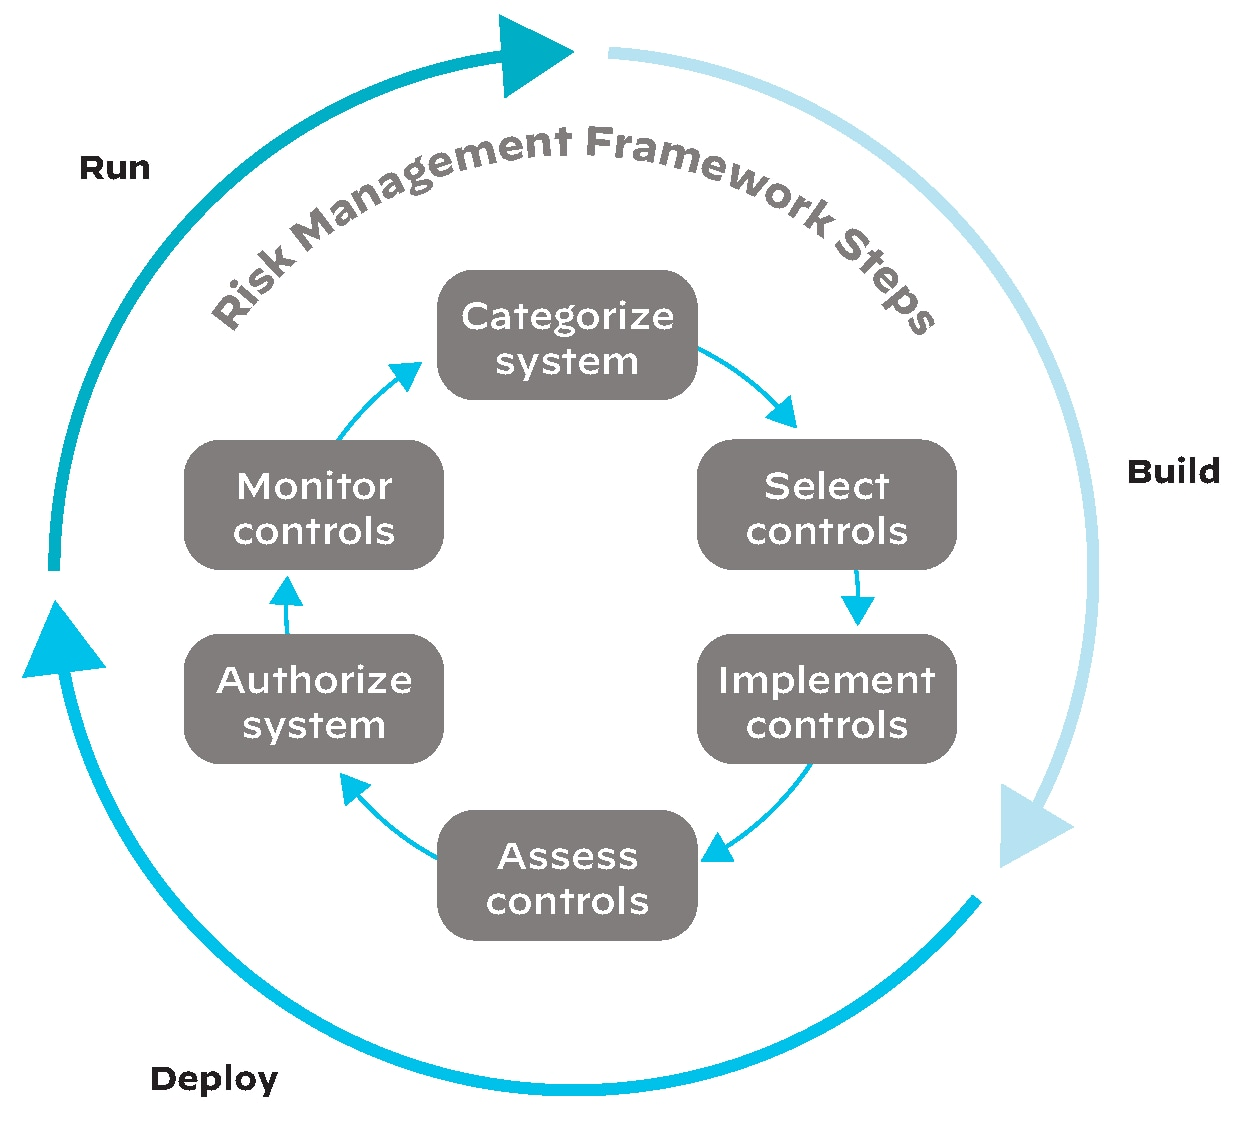 The six-step RMF aligned to the development lifecycle, of build, deploy and run.